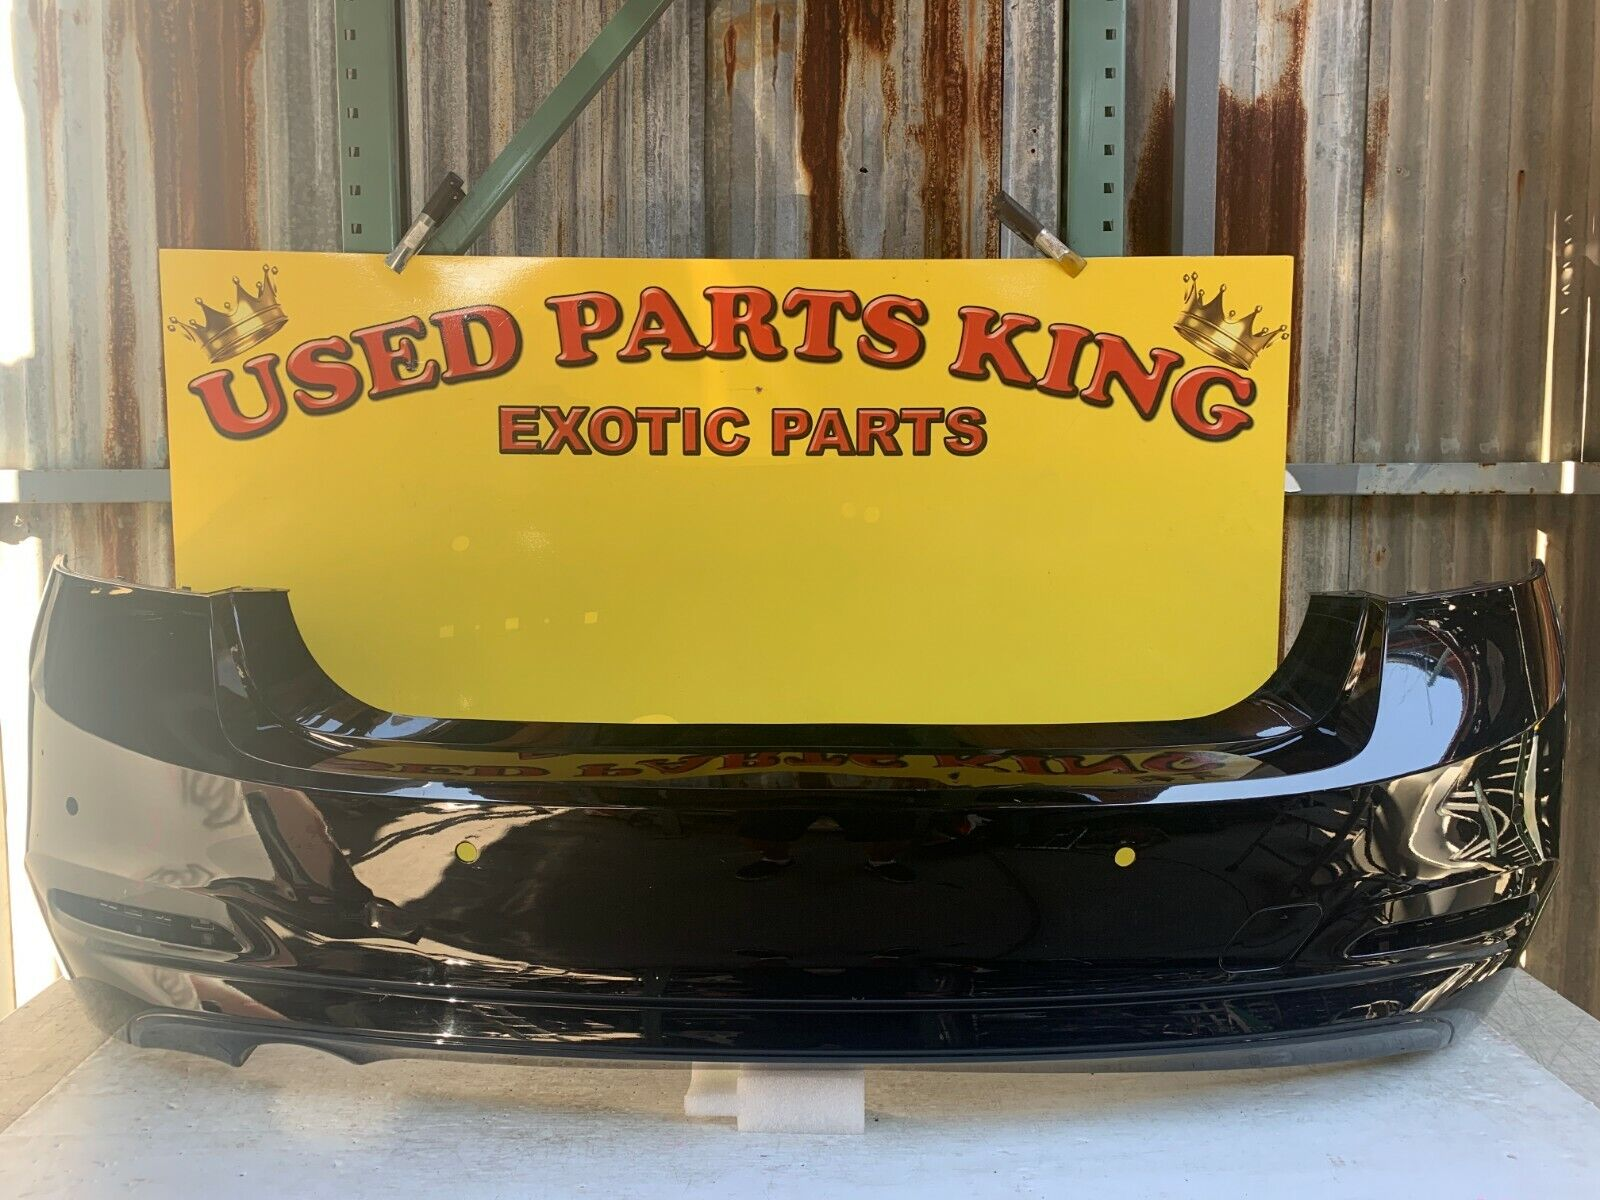 Used BMW 328i Bumpers for Sale